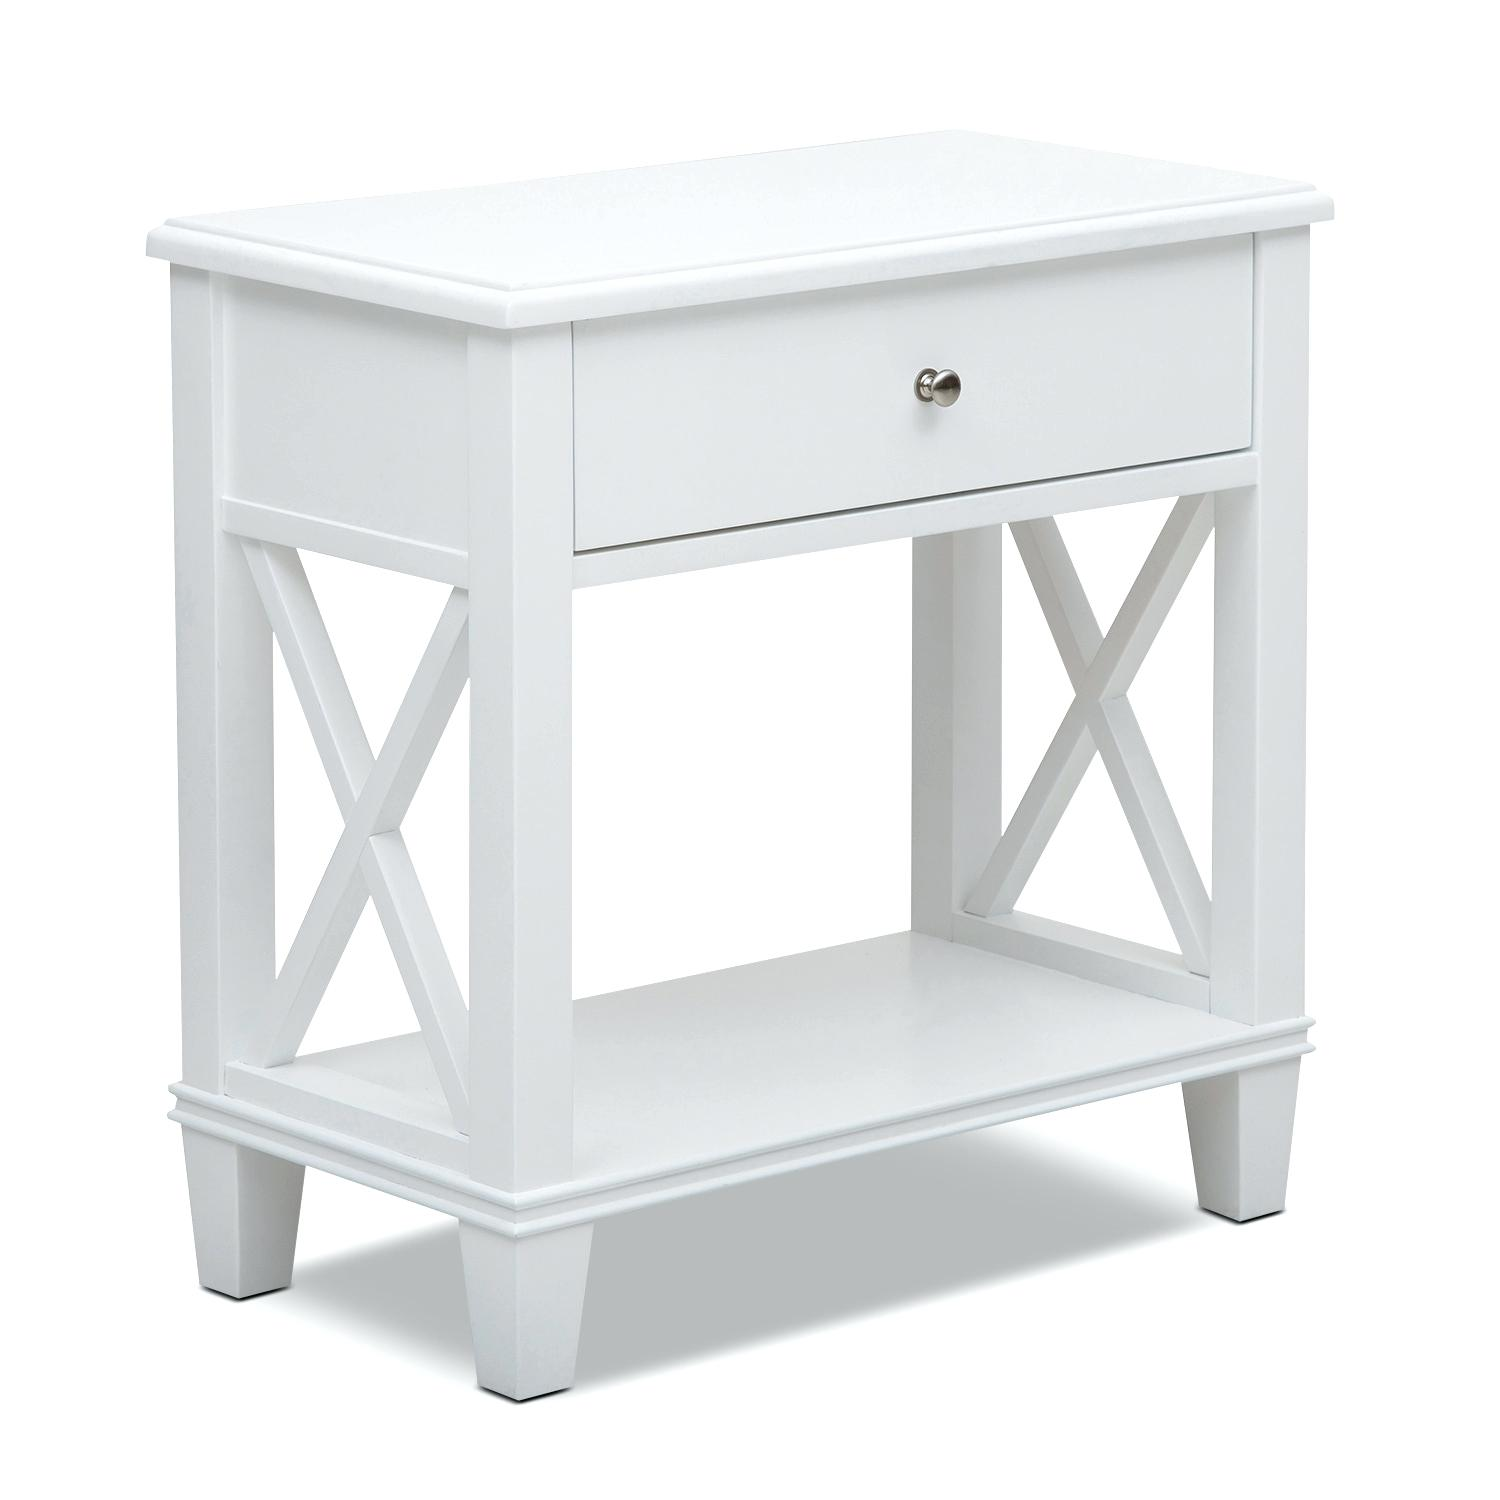 accent table white whitewash round and occasional furniture distressed target fretwork natural oak end ballard designs stools linen placemats glass pedestal side black modern